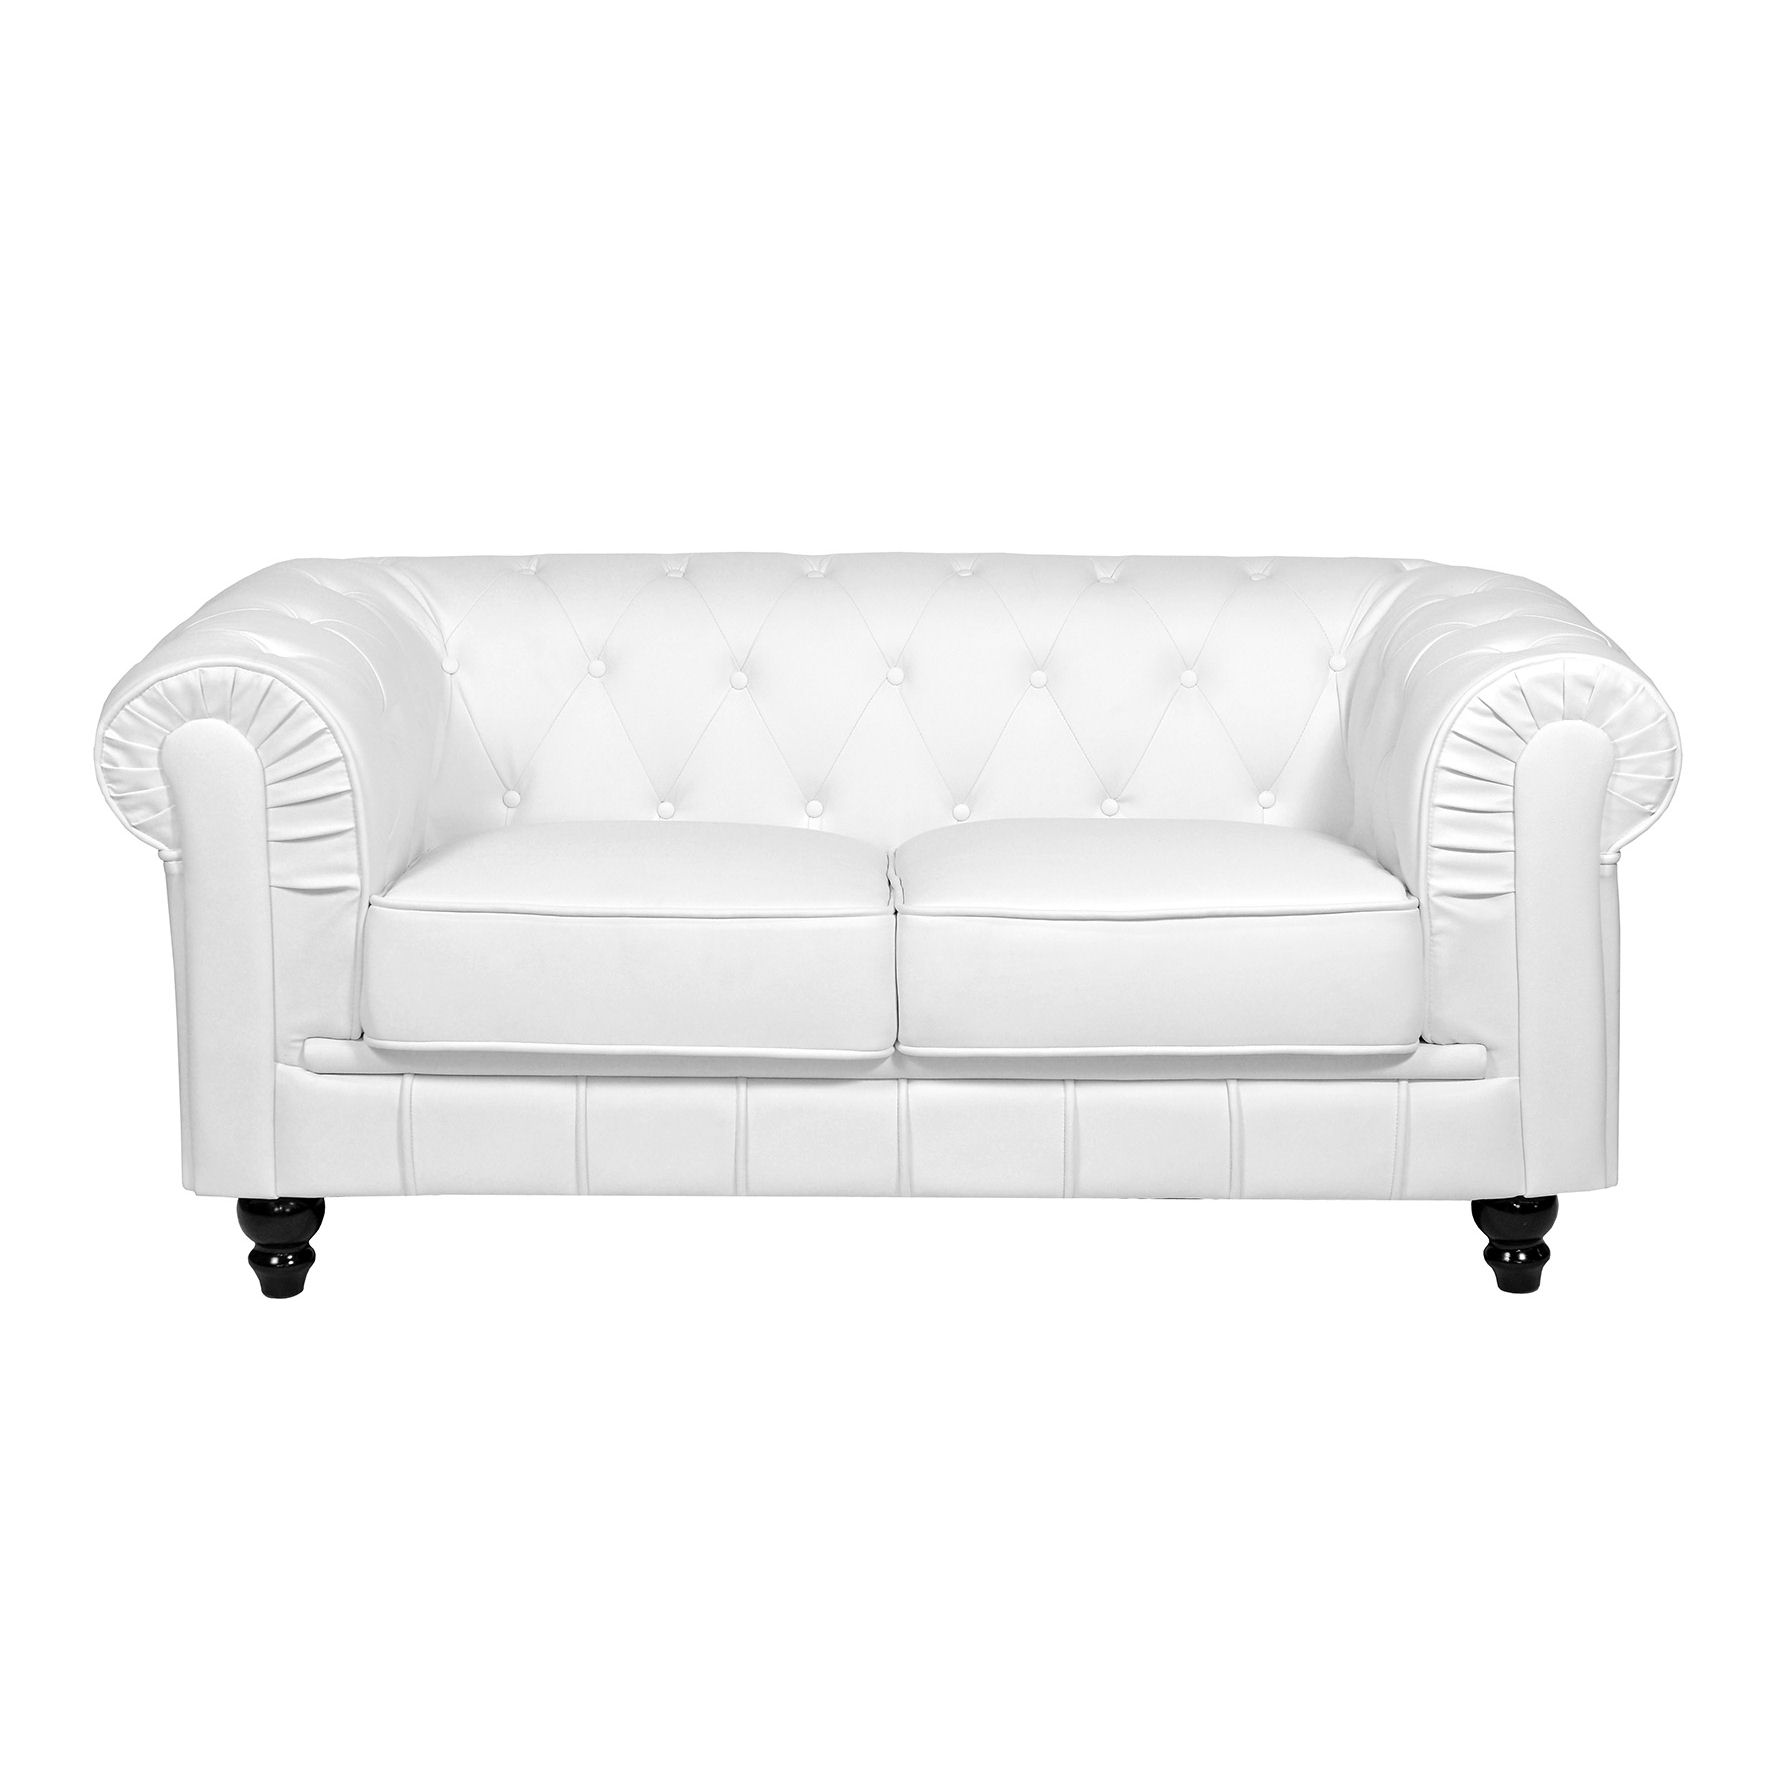 deco in paris canape 2 places blanc chesterfield can chester 2p pu blanc. Black Bedroom Furniture Sets. Home Design Ideas